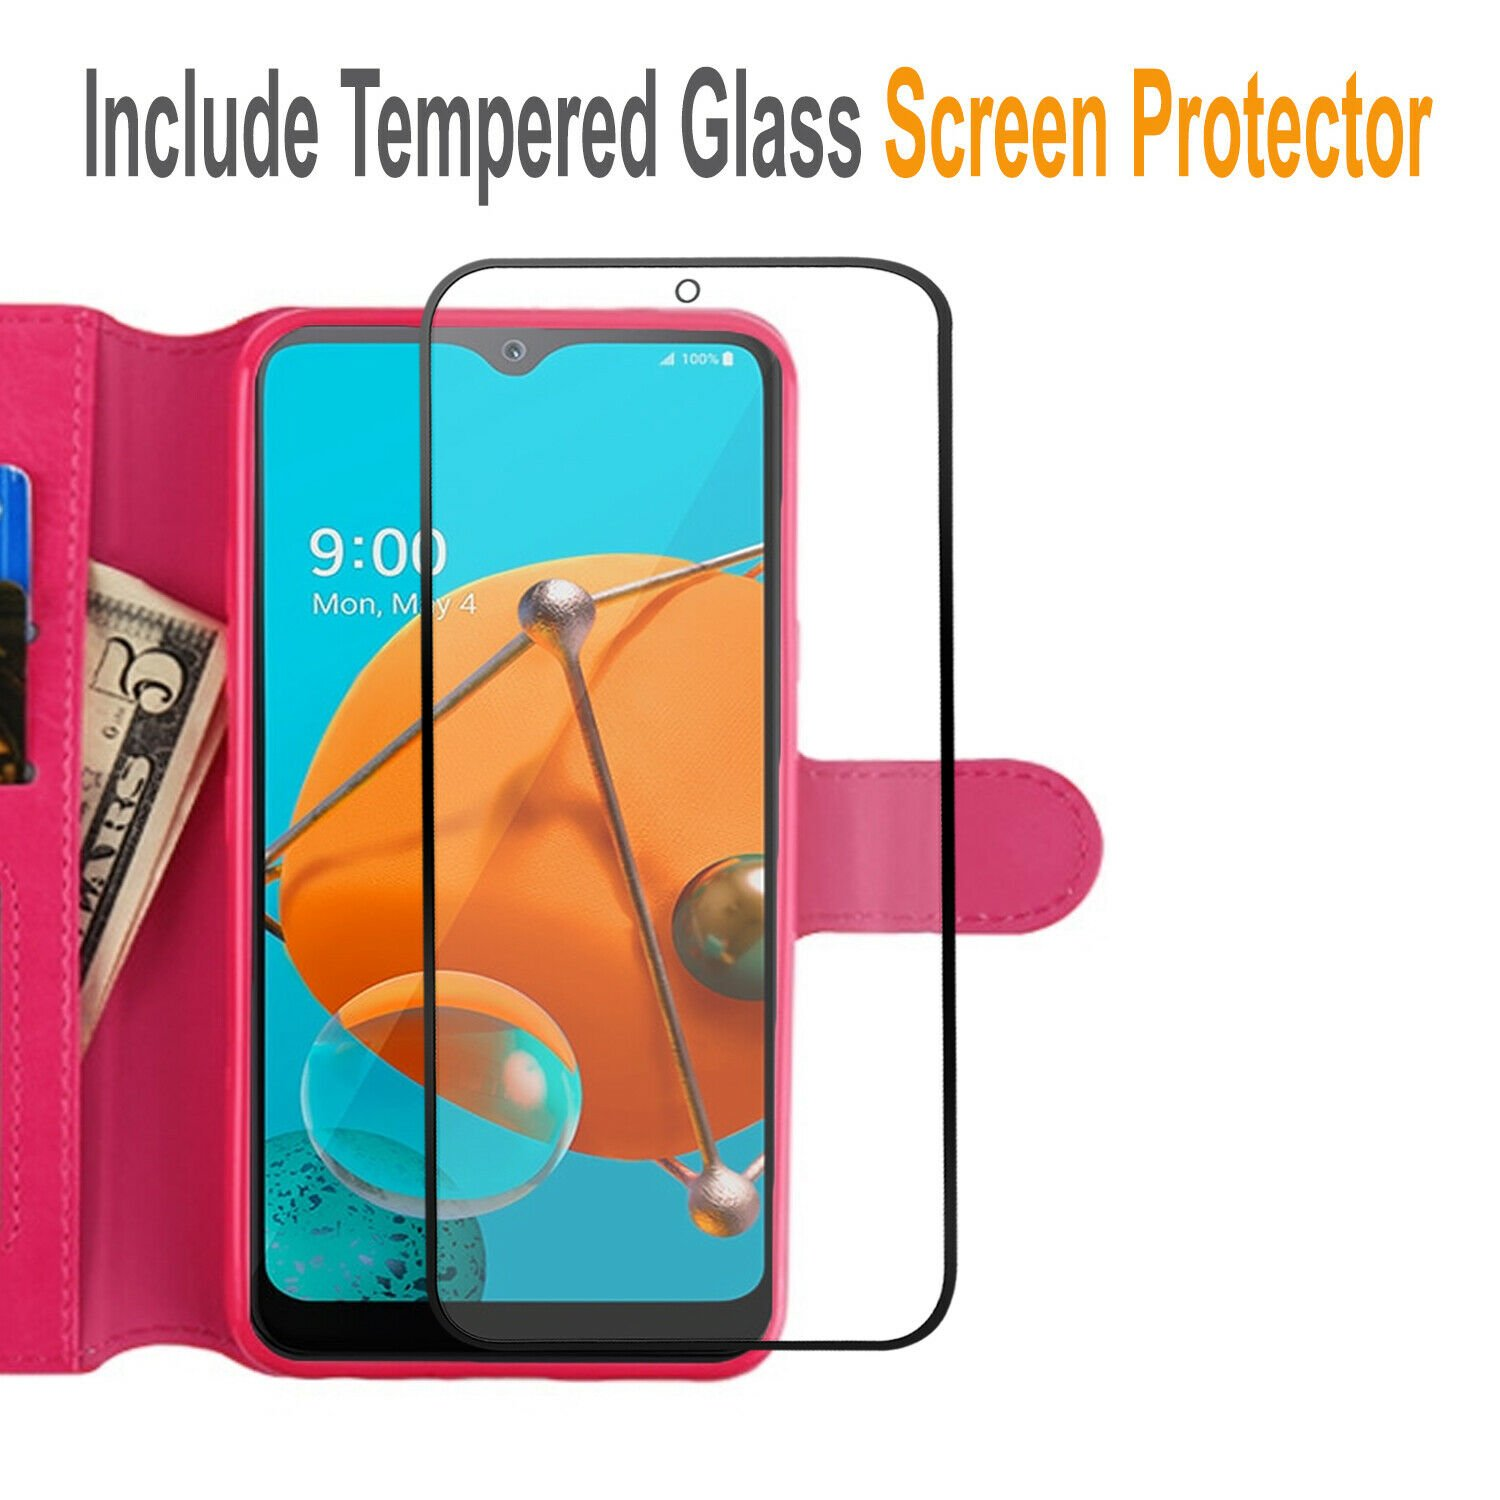 thumbnail 25 - For iPhone 7 / 8 / 7 Plus Case, Premium Wallet Cover + Tempered Glass Protector